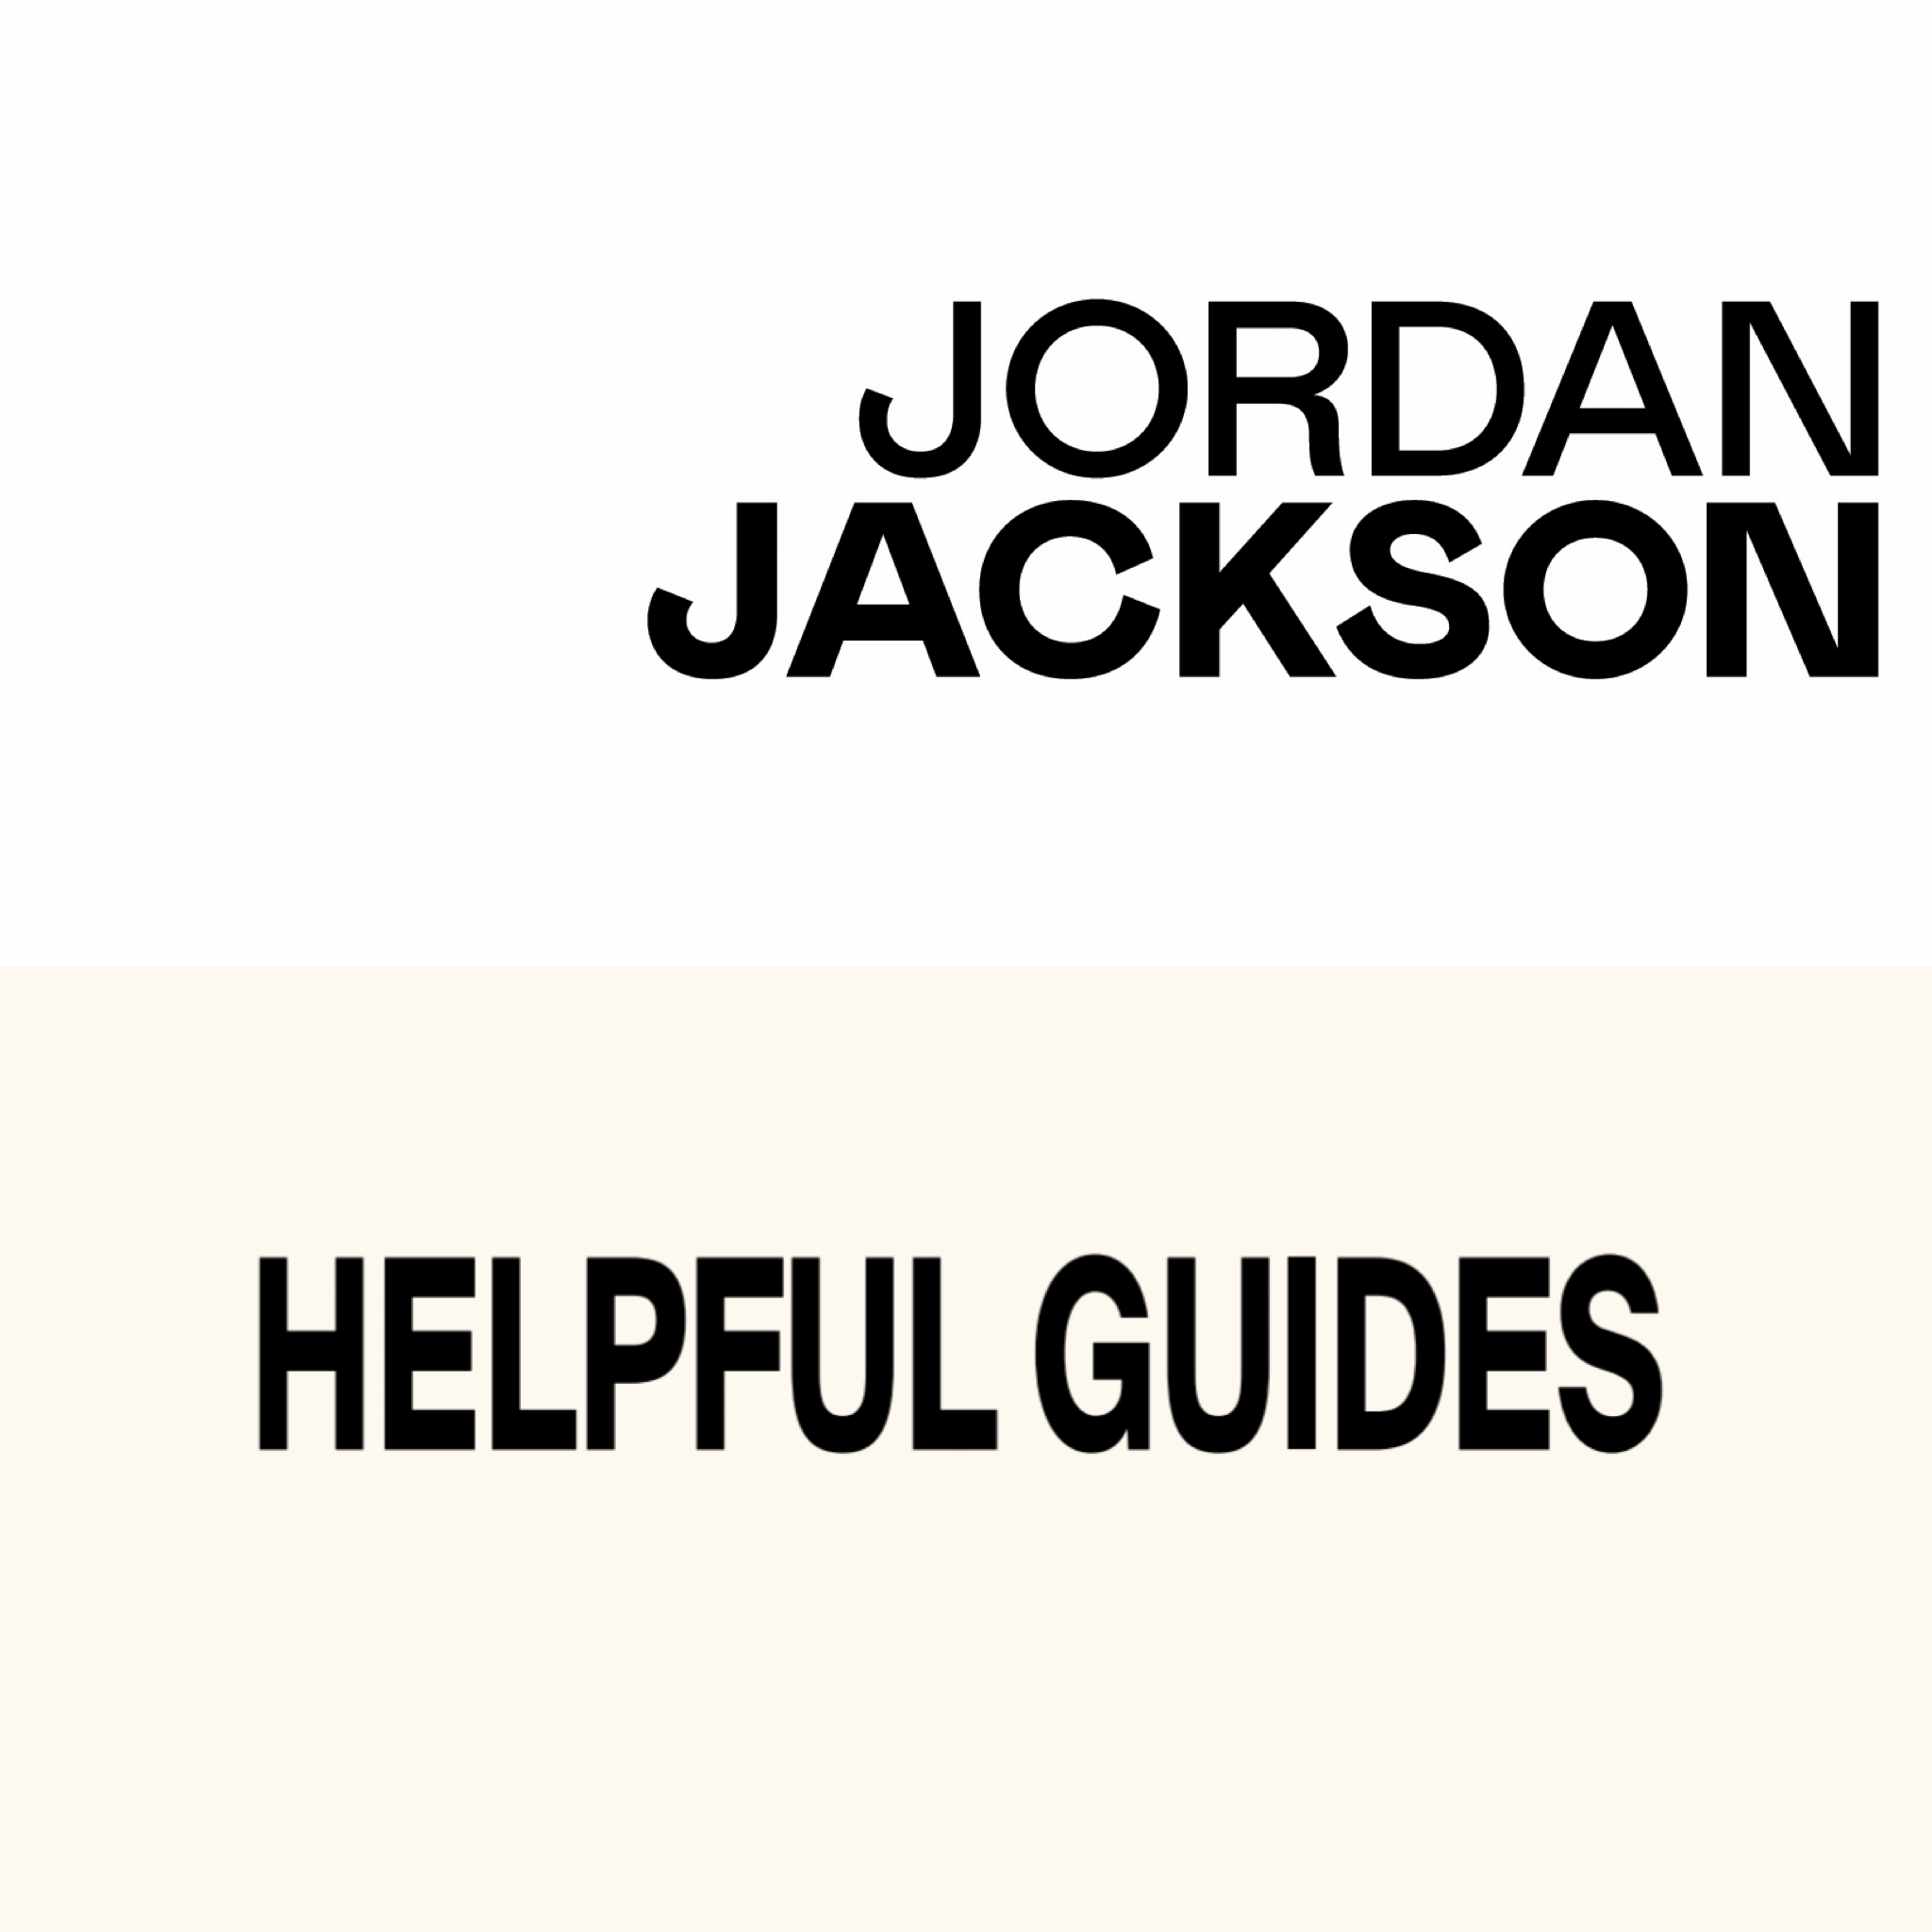 Emerging Designer + Creative Thinker - Talented apparel designer Jordan Jackson, specializing in men's casual sportswear, teams up with Helpful Guides own, Jason Murphy, creative director and artist Rob Lewis who specialize in custom pieces in both men and women casual wear.